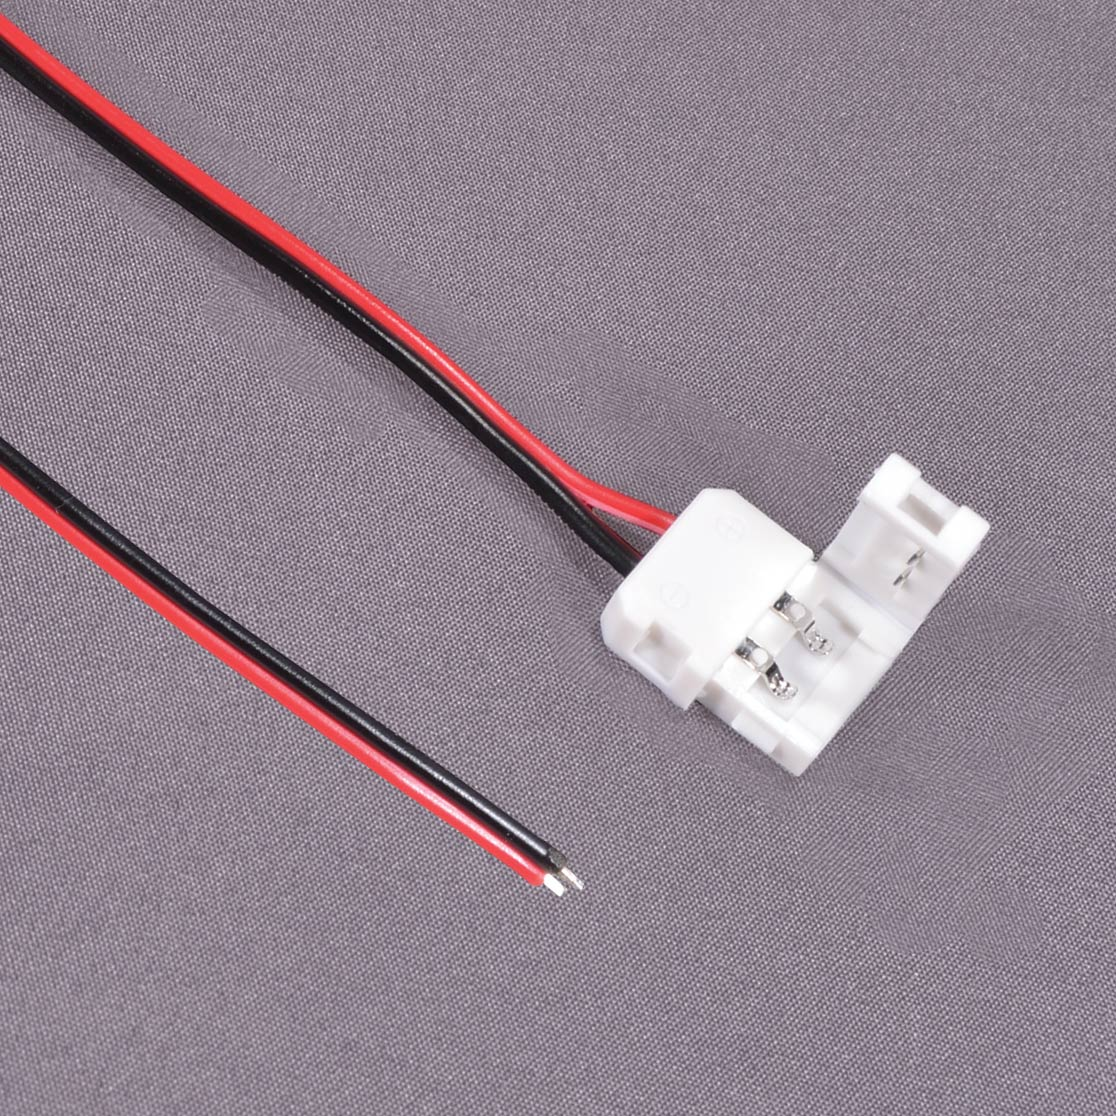 Lighting led strip connector with 5 inch long flying leads aloadofball Image collections